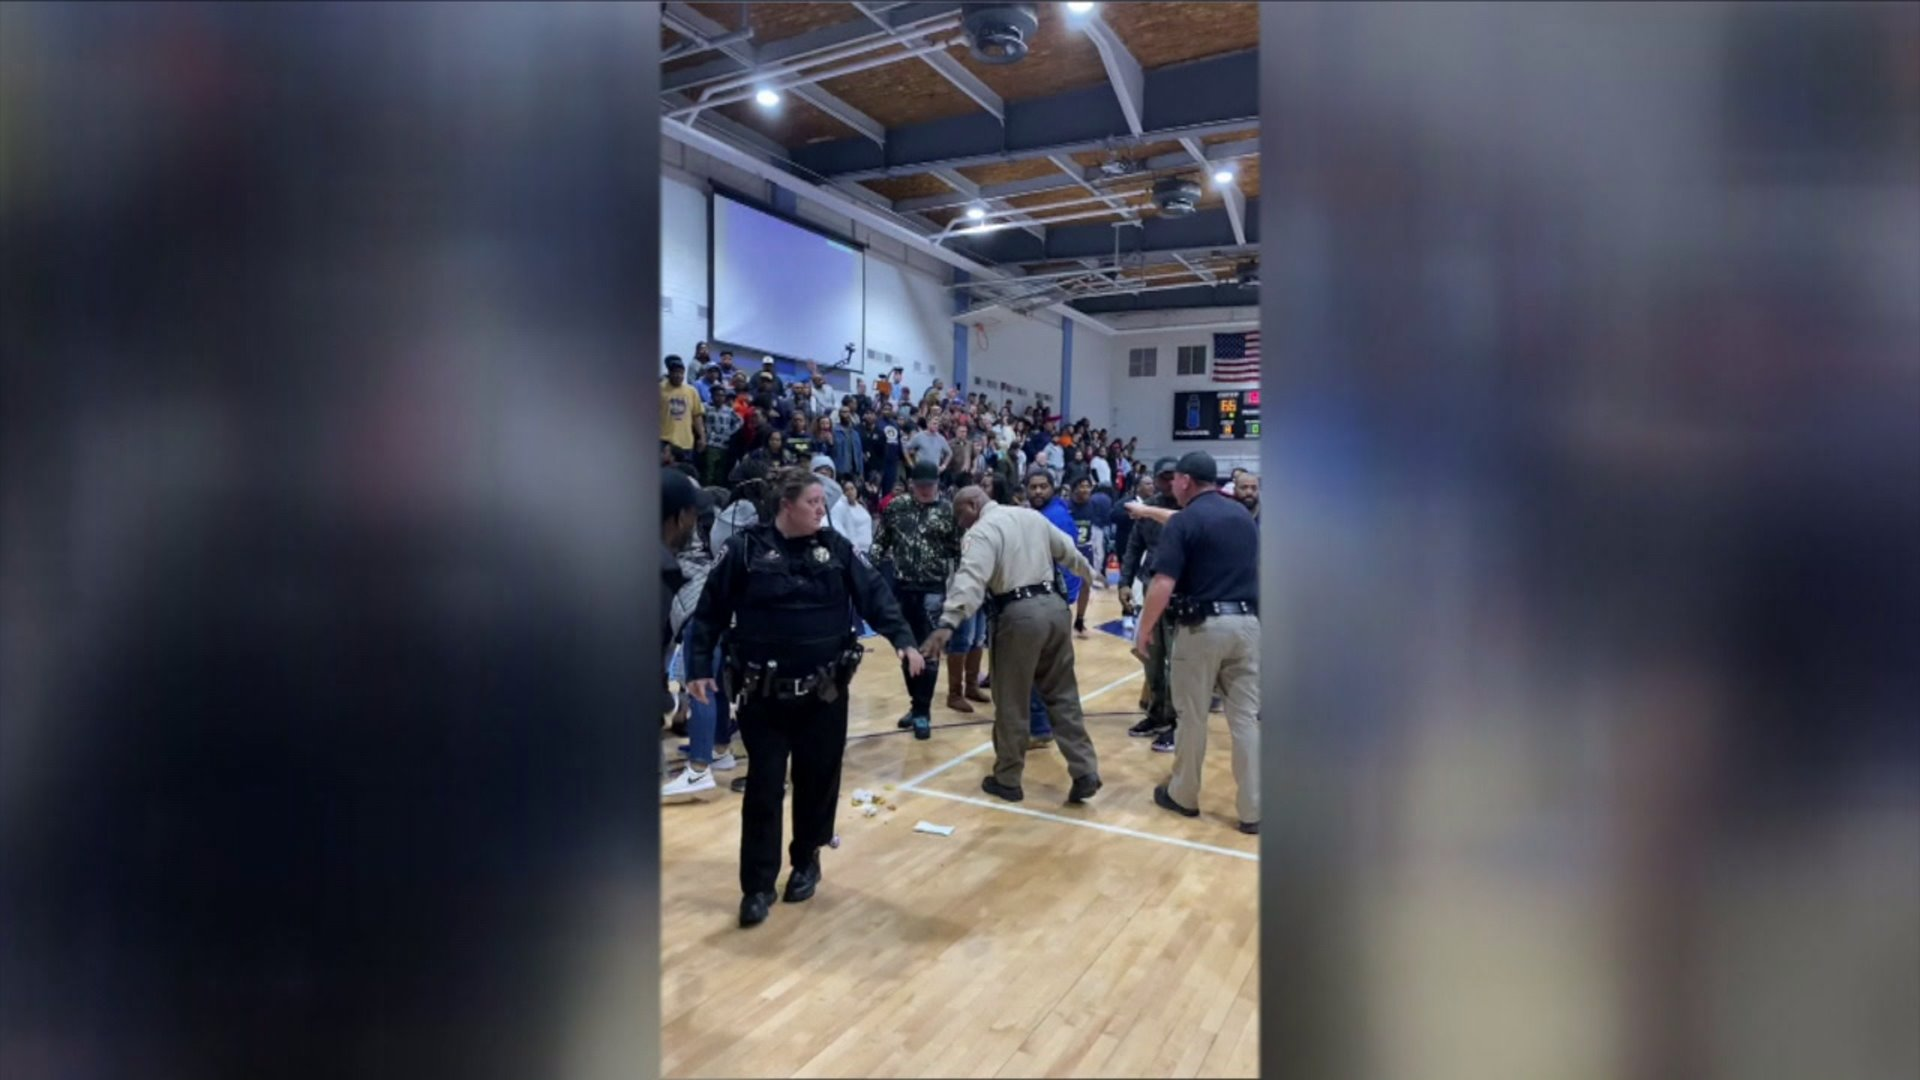 Police were called to a high school after a fight broke out during a basketball game between Reidsville and South Granville high schools.